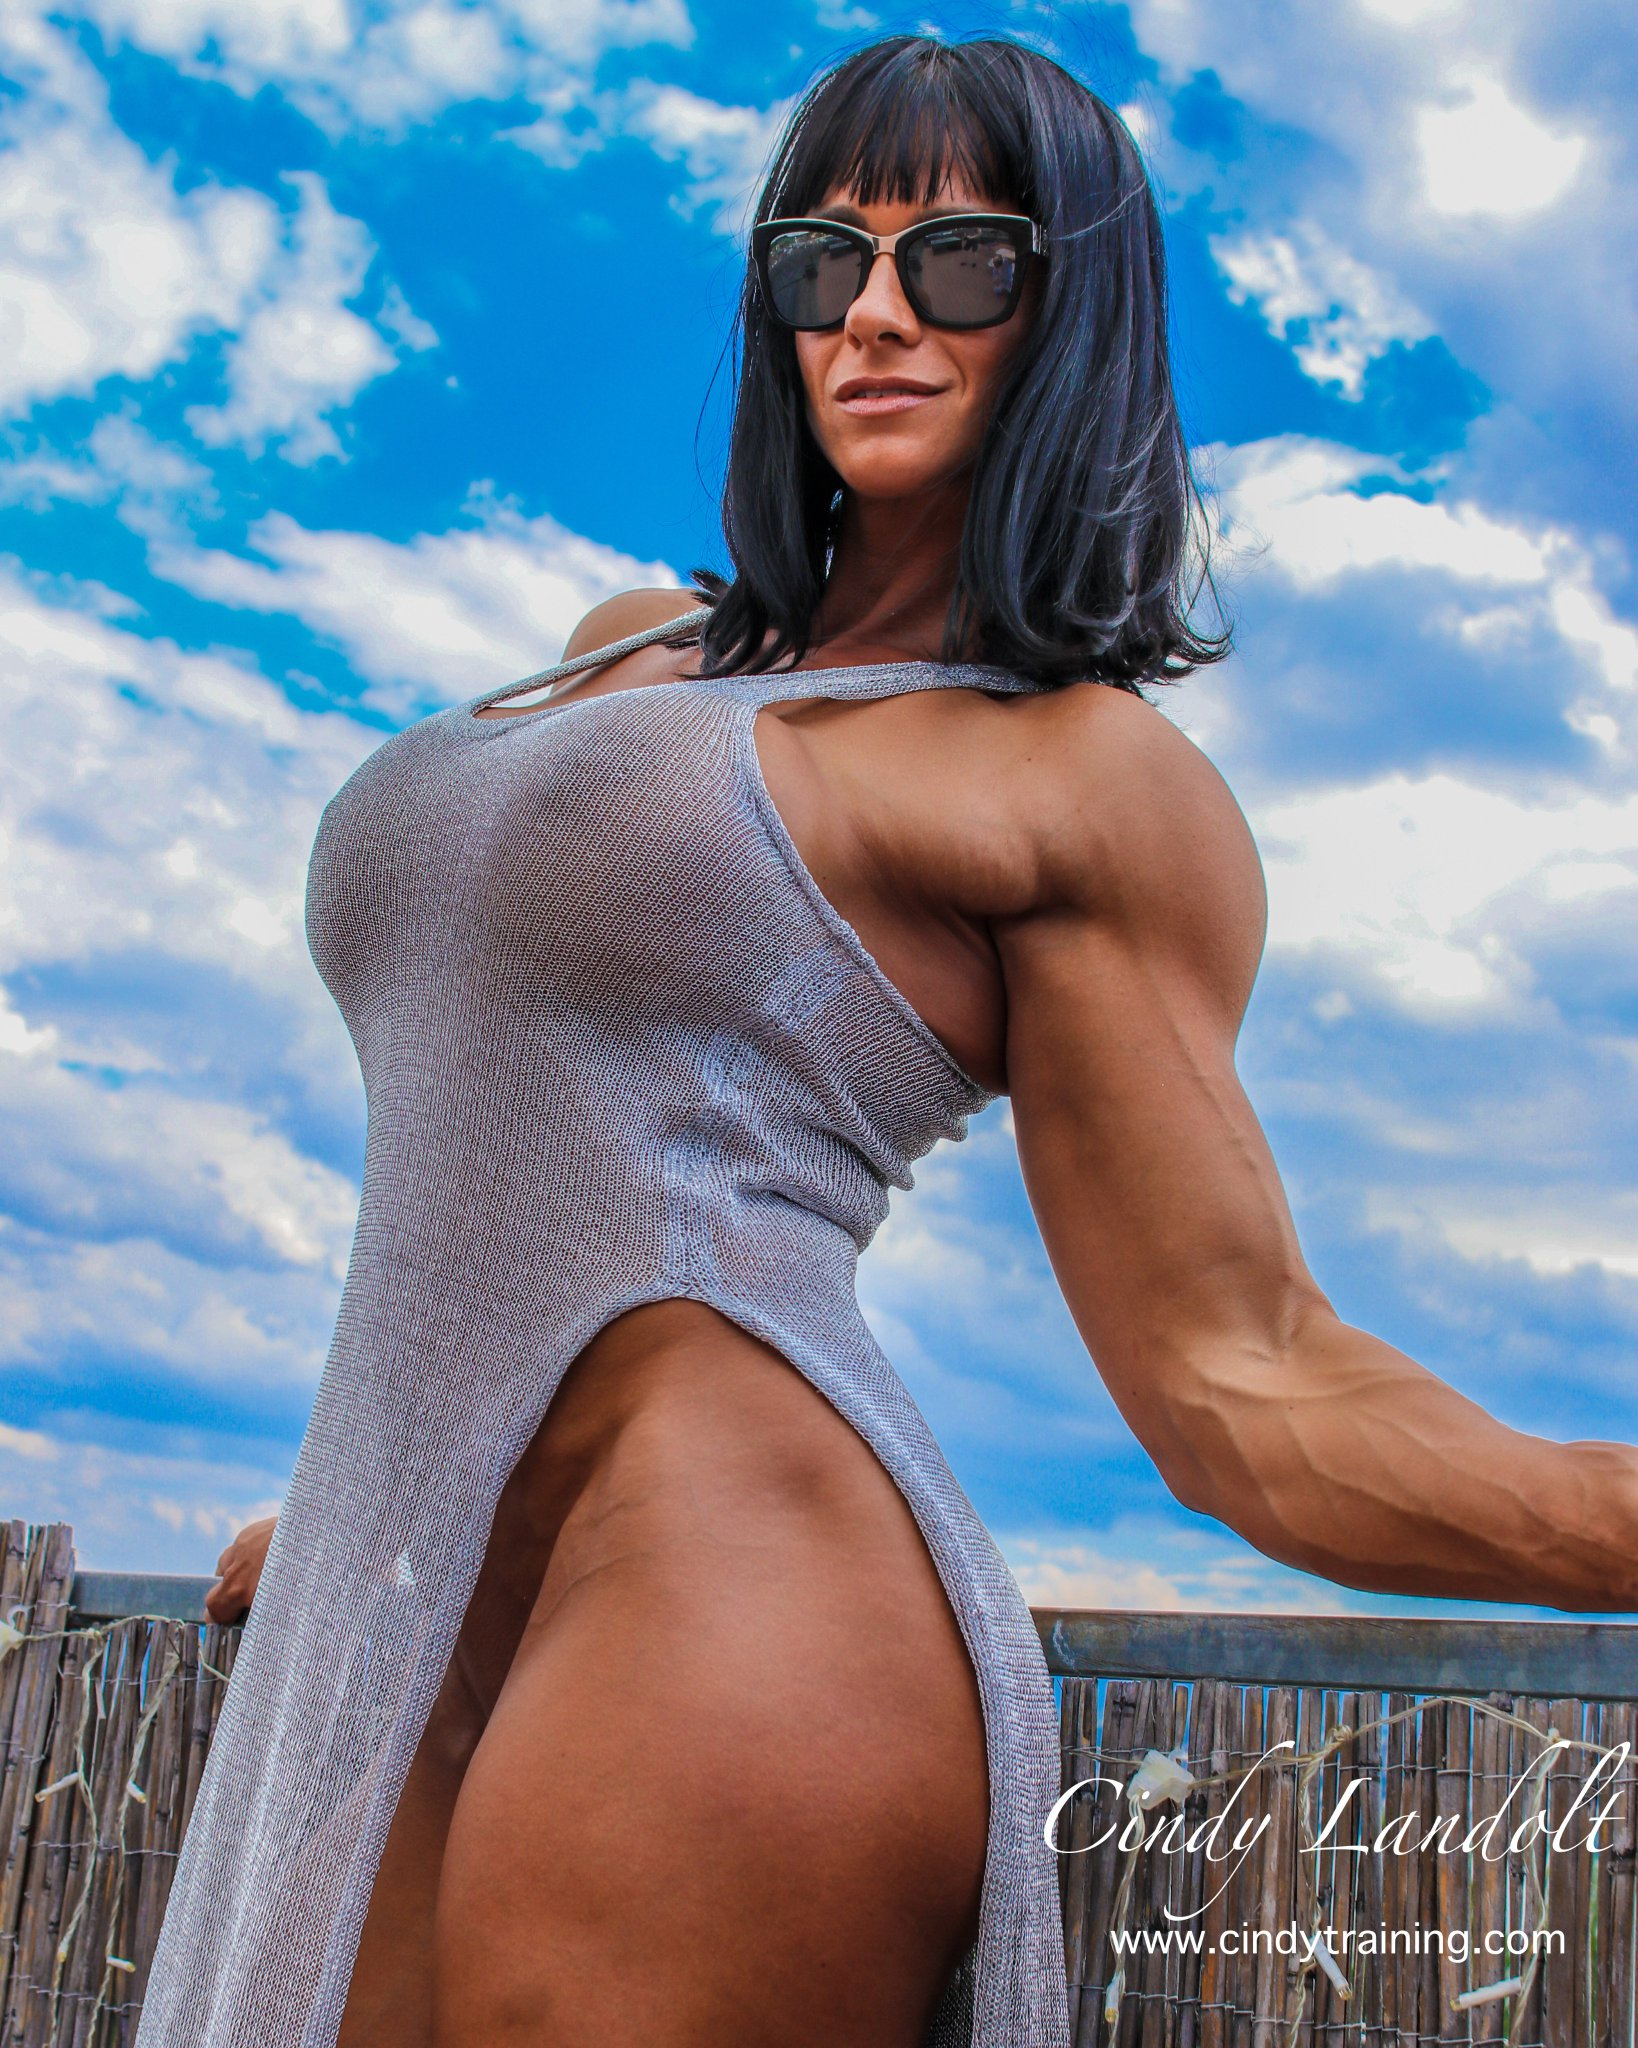 Free nude woman body builder picture the